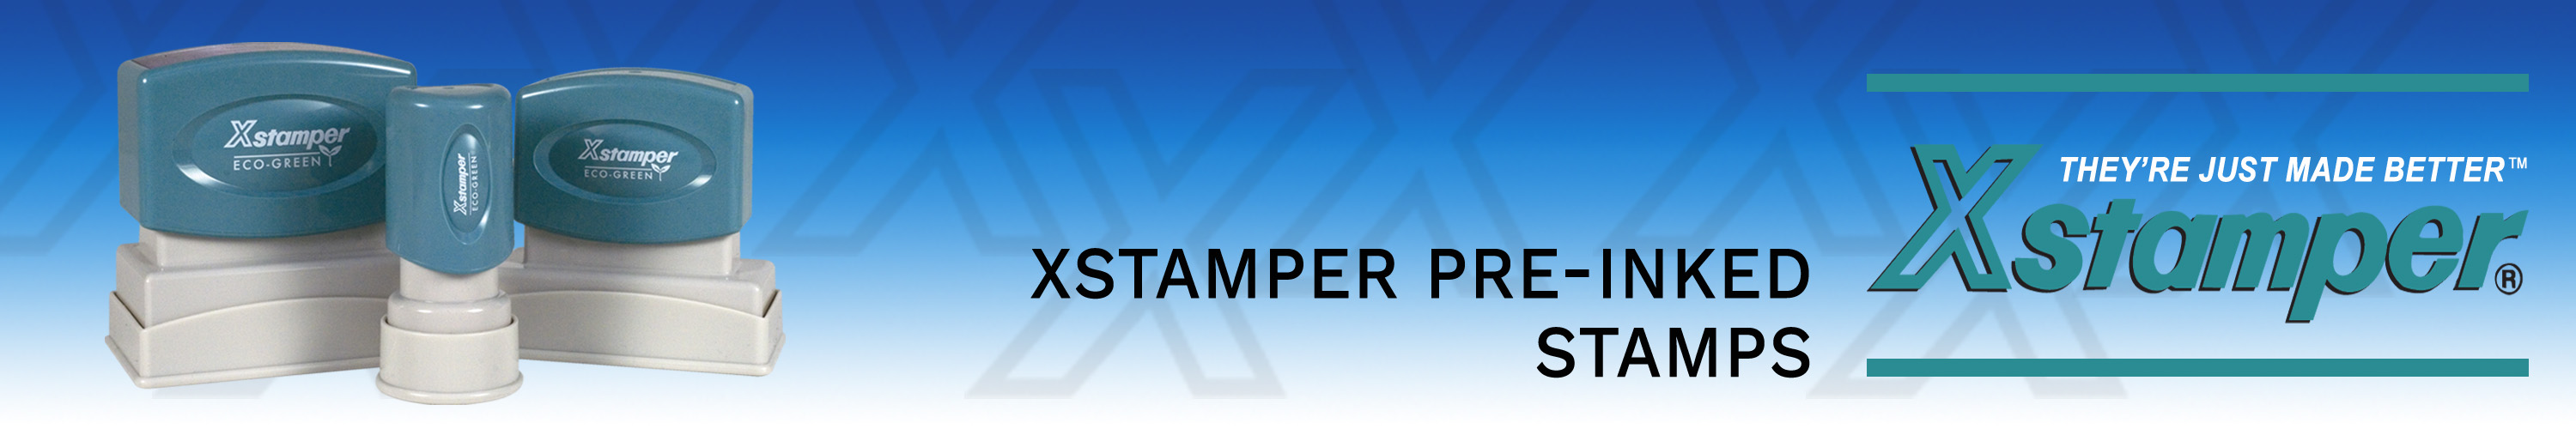 Xstamper Rubber Stamps made and shipped daily from Stamp-Connection.